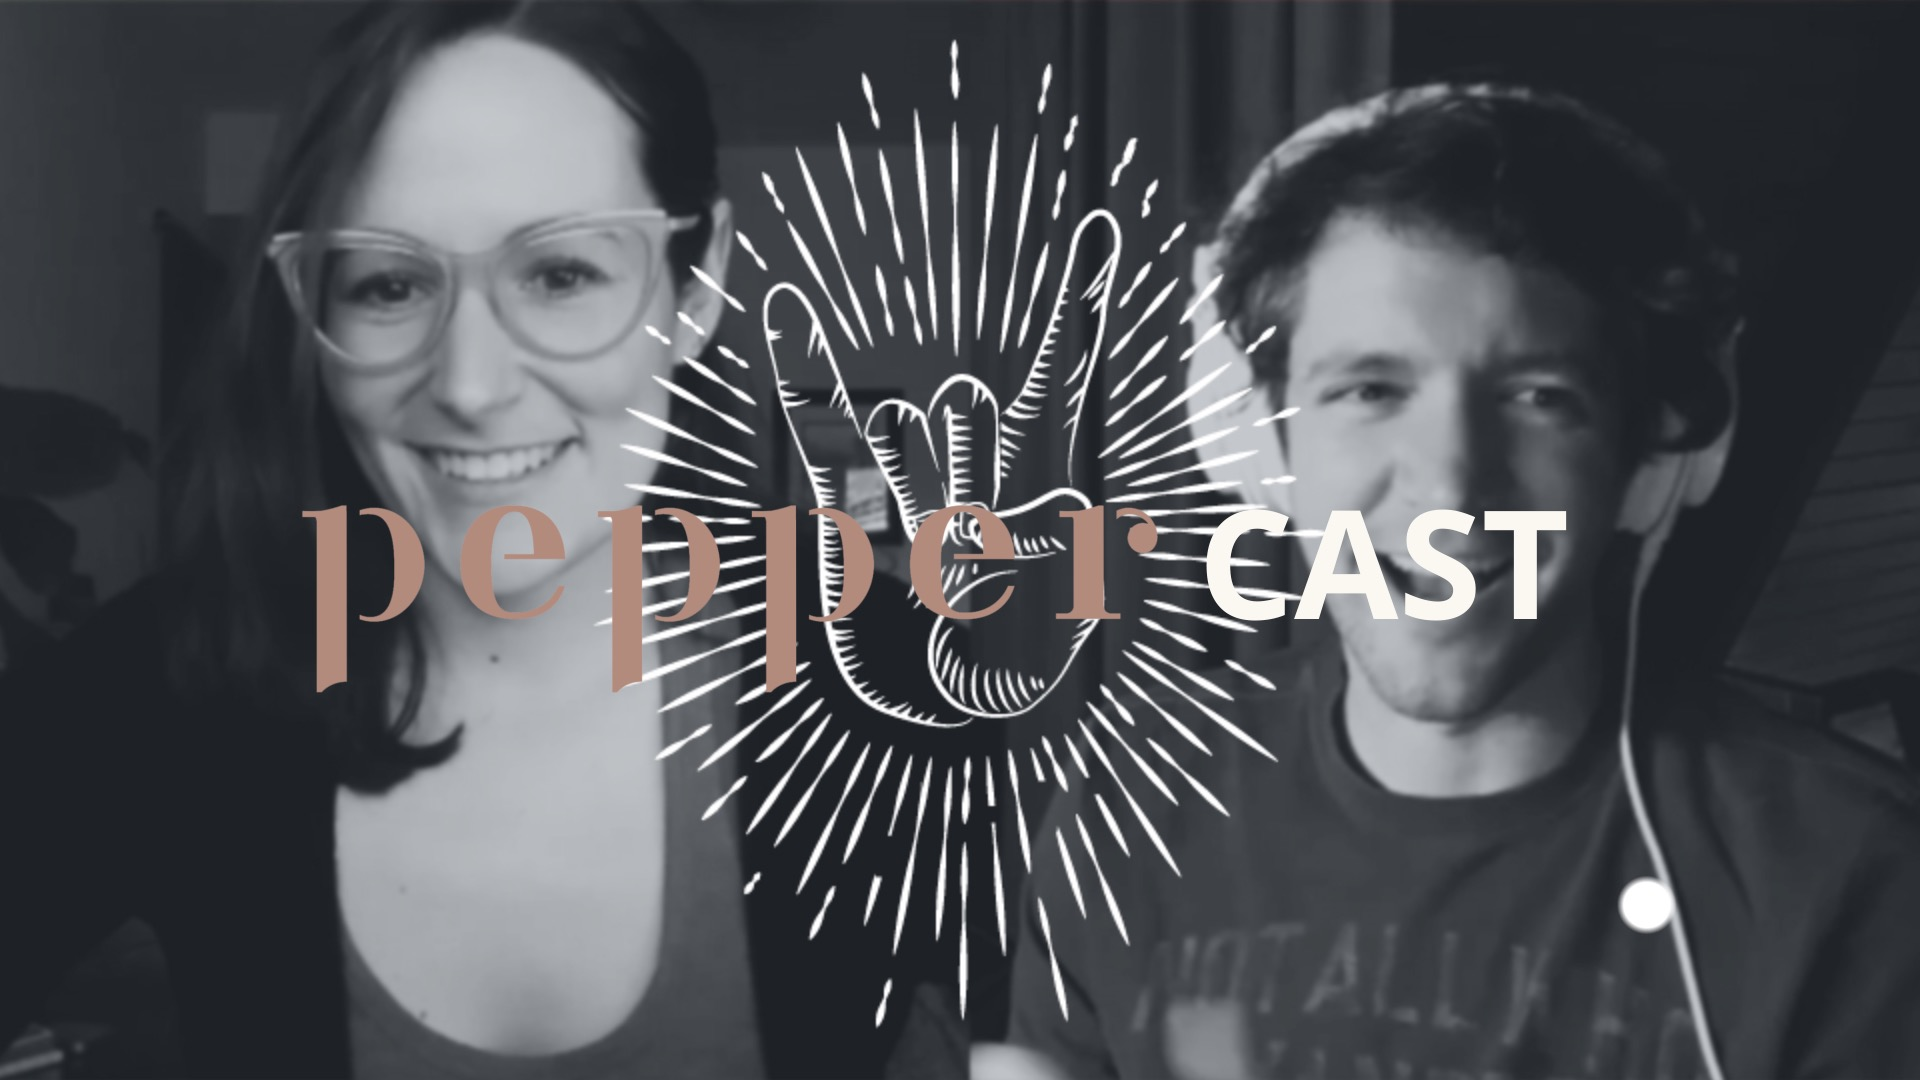 PepperCast episode 9 cover photo with Stacey Krolow and Sam Hurd discussing the 2020 state of the wedding photography industry